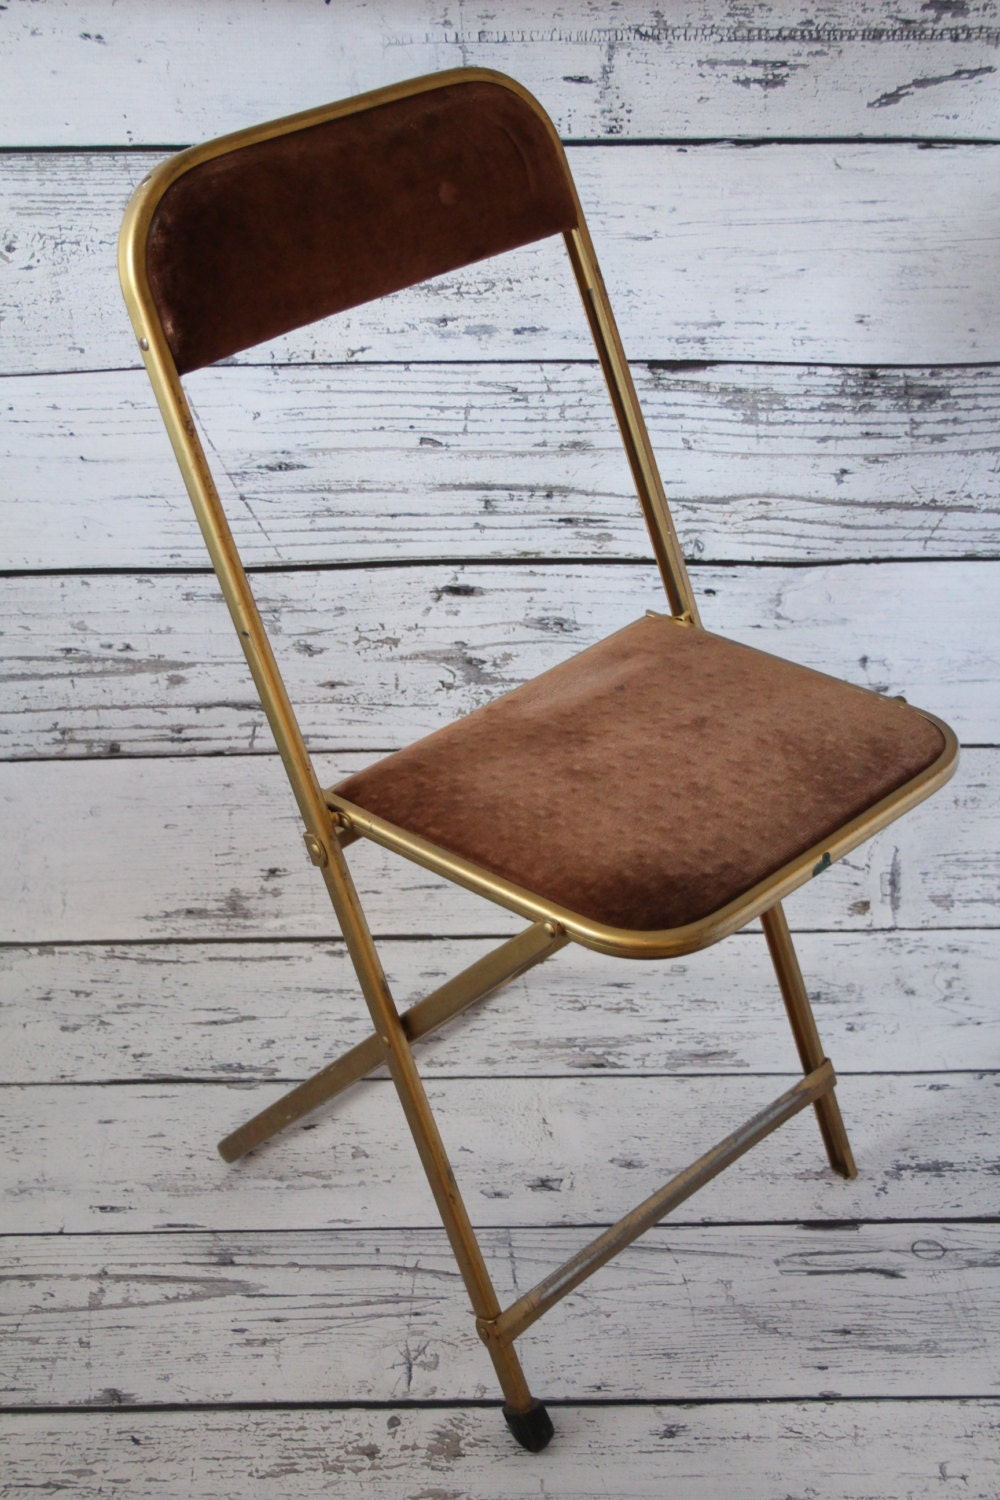 Vintage A Fritz Co Folding Chair Gold Metal Frame Brown